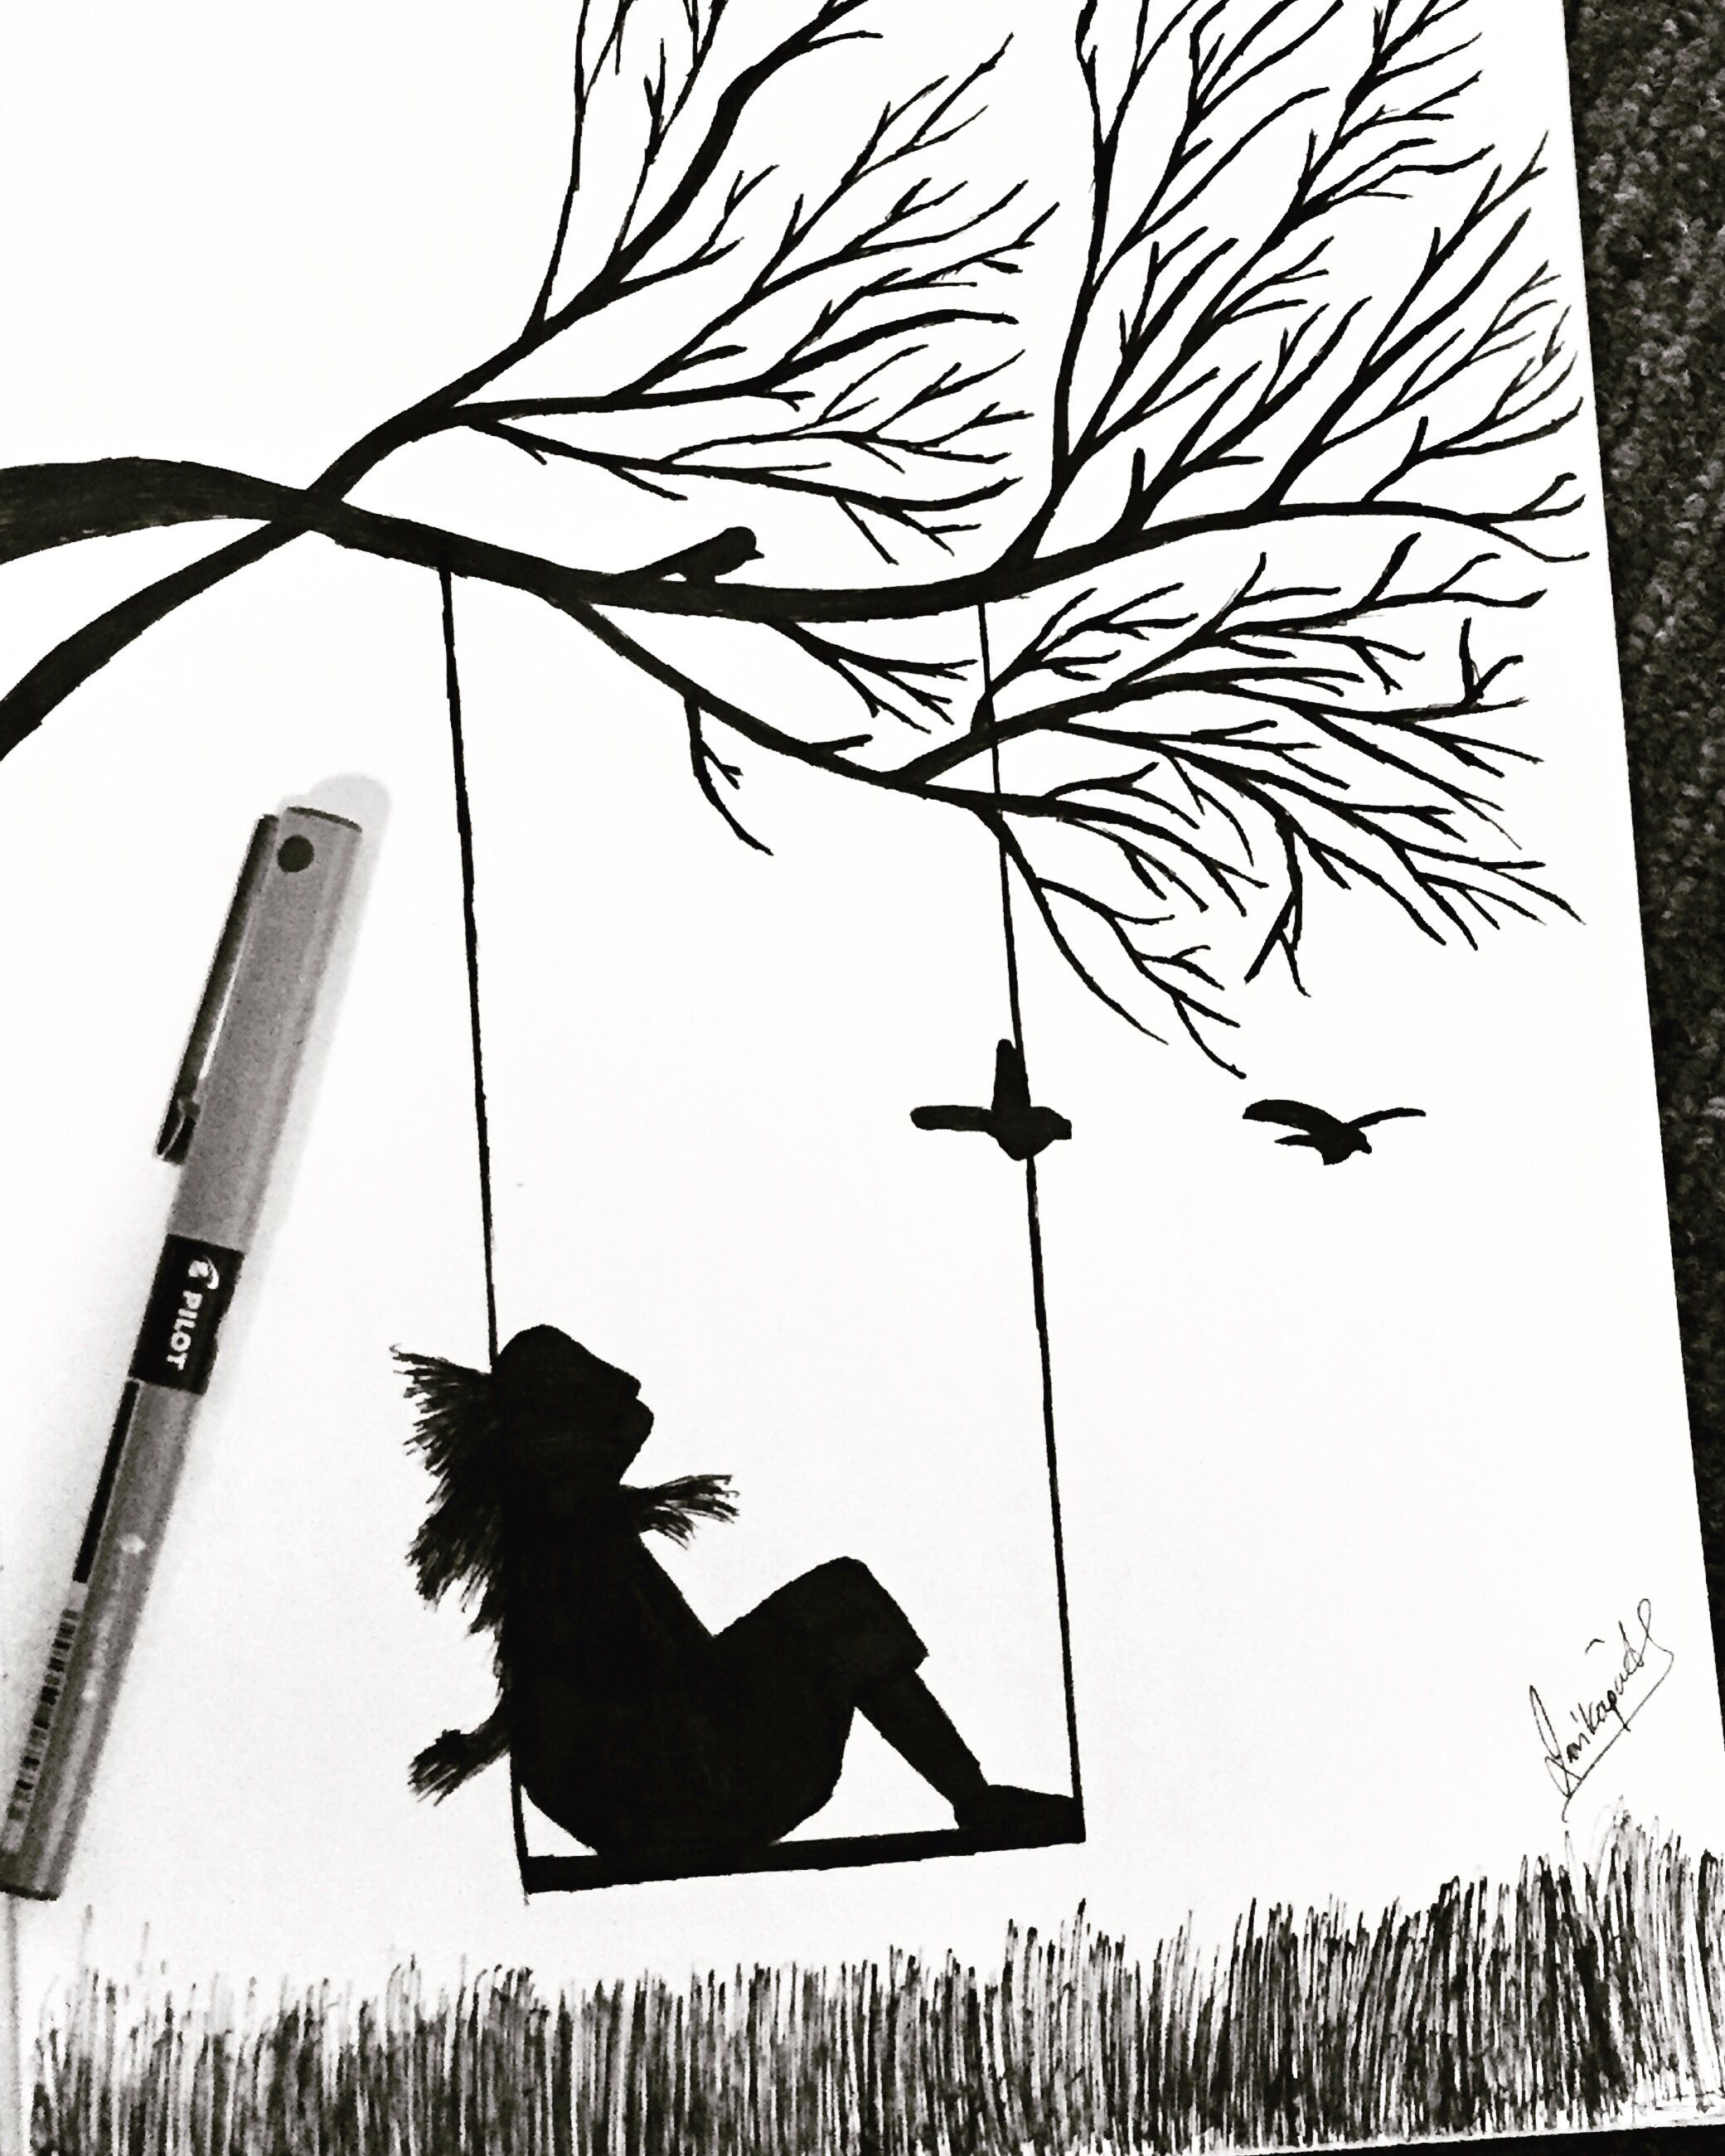 Beautiful Nature Pencil Drawings: #sketch #drawing #artistic #loveforart #creative #swing